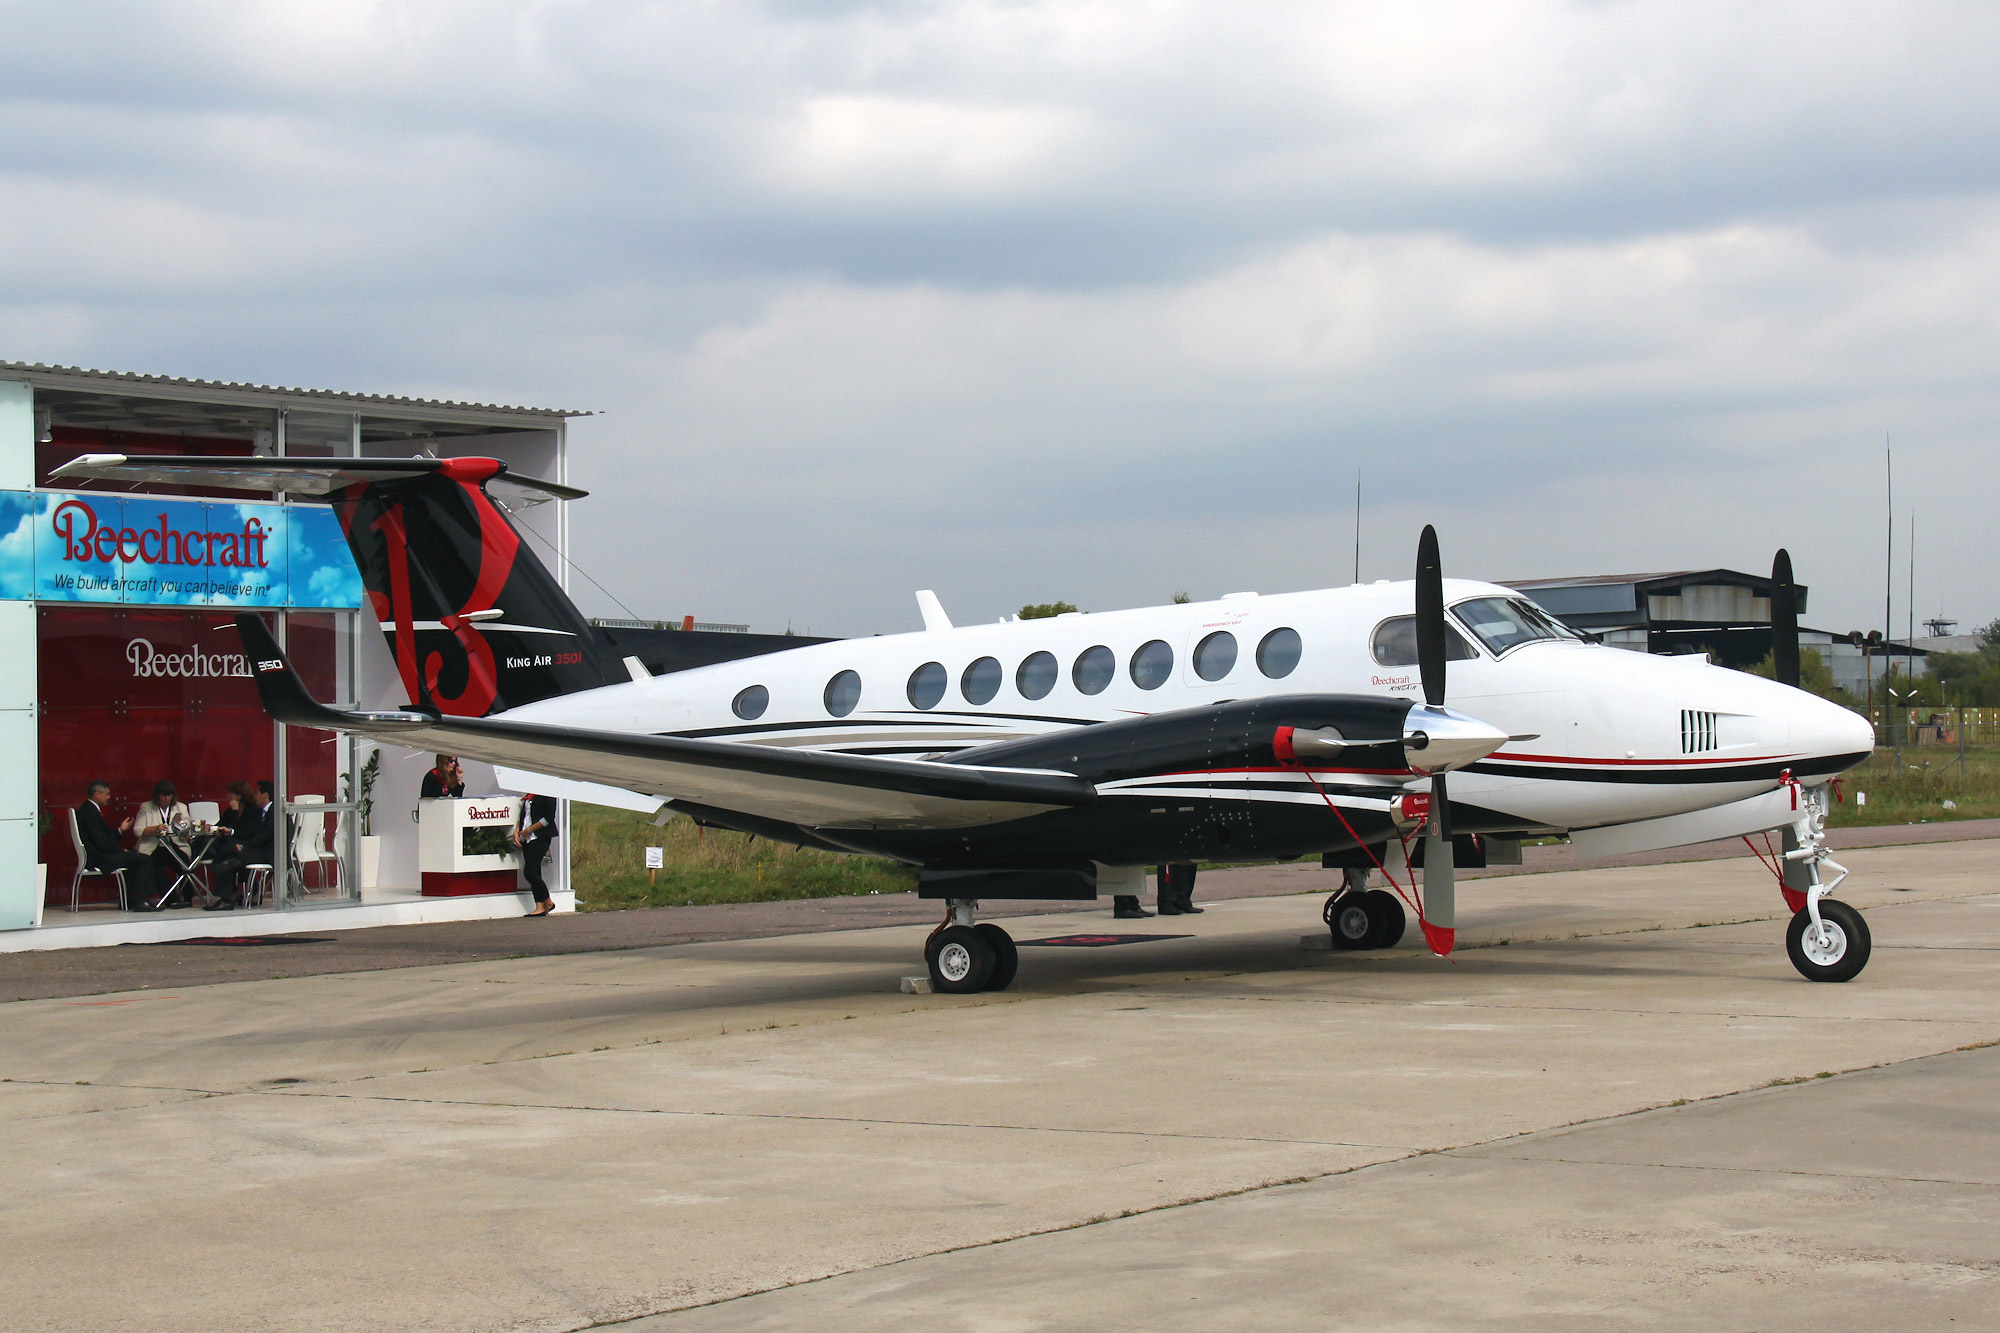 The Beechcraft King Air 350 at the MAKS-2013